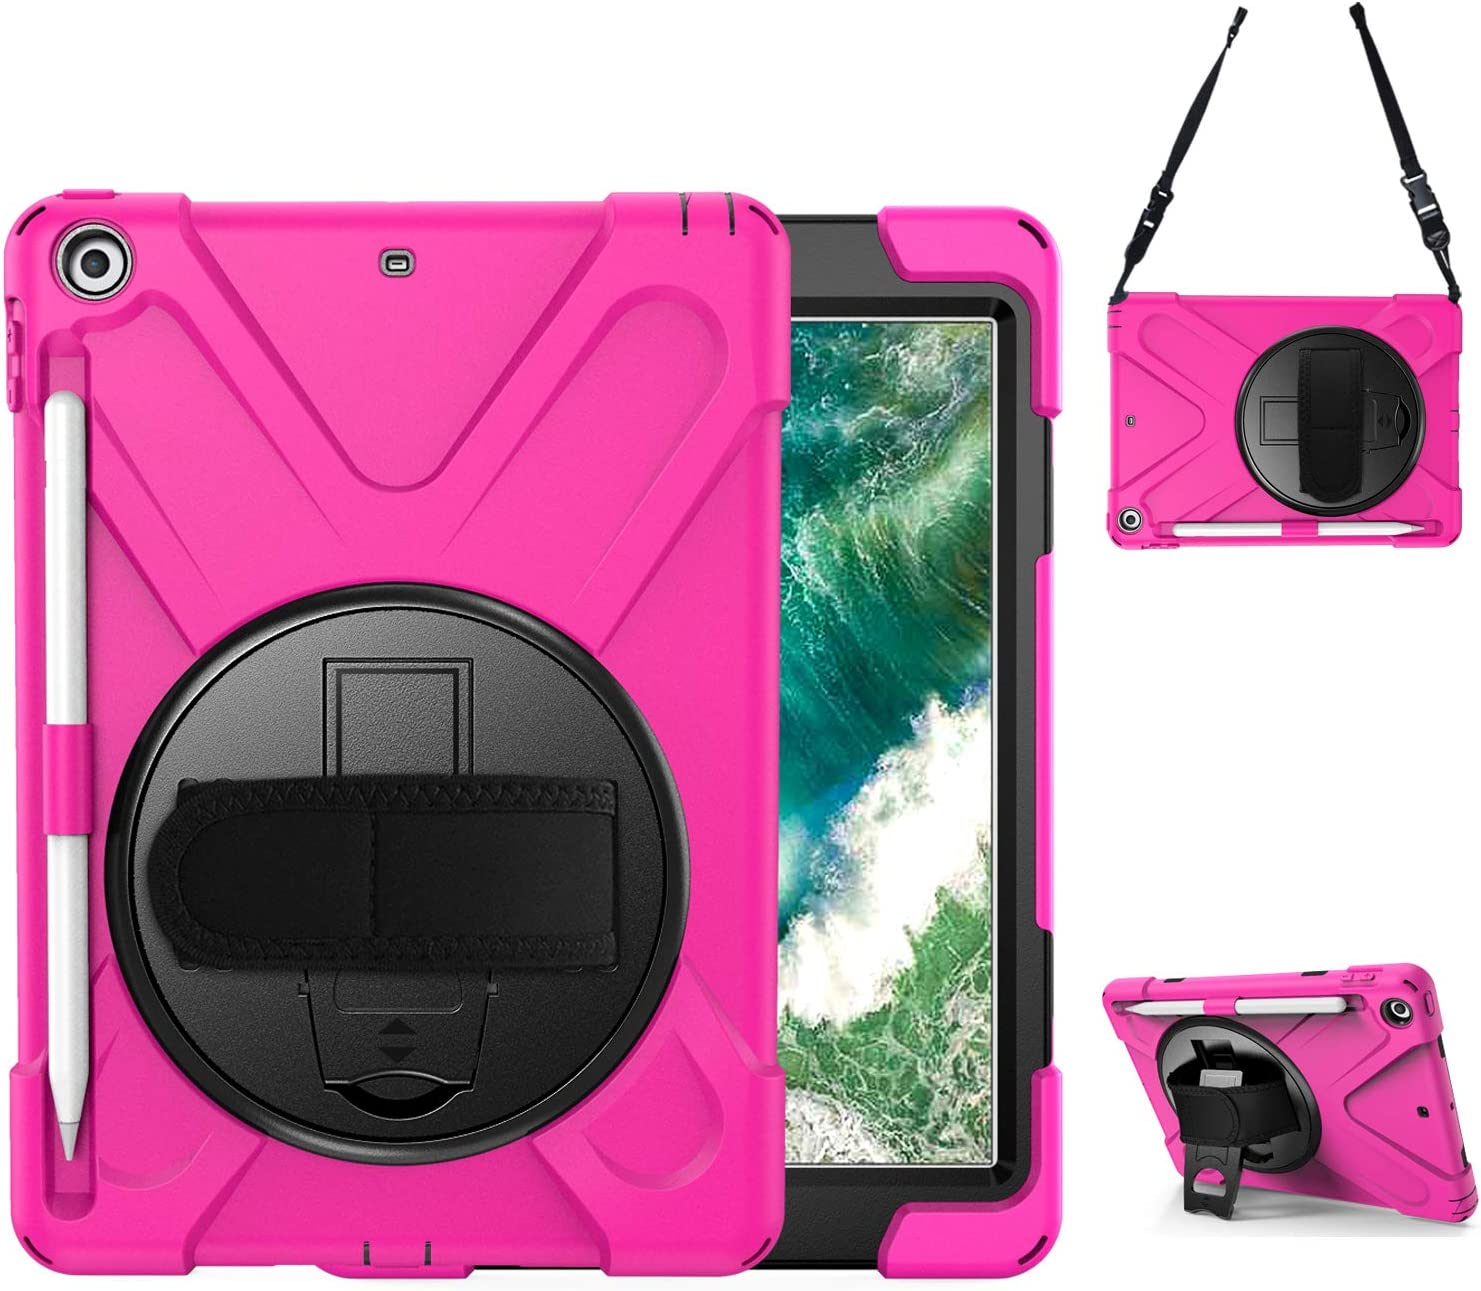 BRAECN iPad 2018 Case, iPad 9.7 Case - Hybrid Protective Shockproof Rugged Kids Case with Pencil Holder, Kickstand, Hand Strap and Shoulder Strap for iPad 9.7 Inch 6th 5th Gen 2018/2017 Tablet -Rose